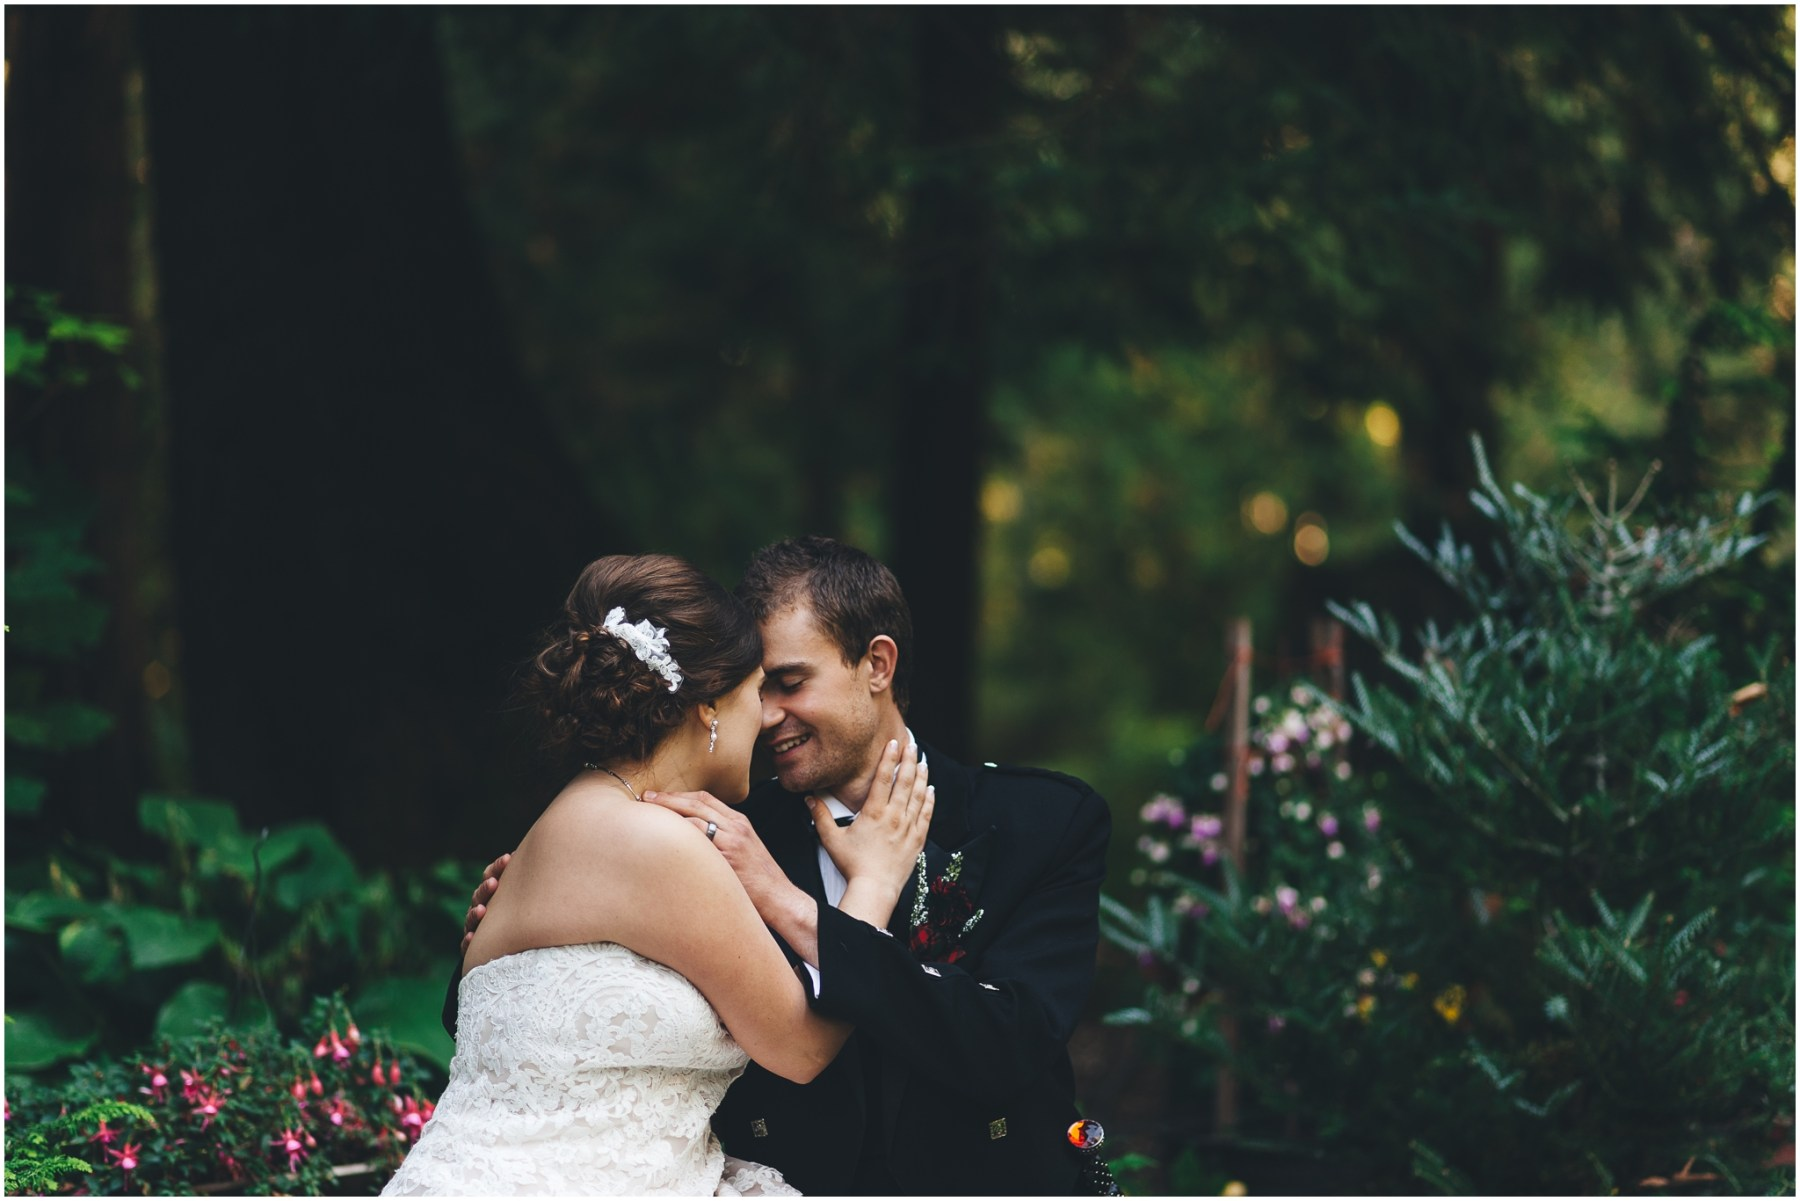 Bride and groom photo at a Scottish American Wedding @ Glen Echo Gardens in Bellingham, WA captured by Ardita Kola Photography